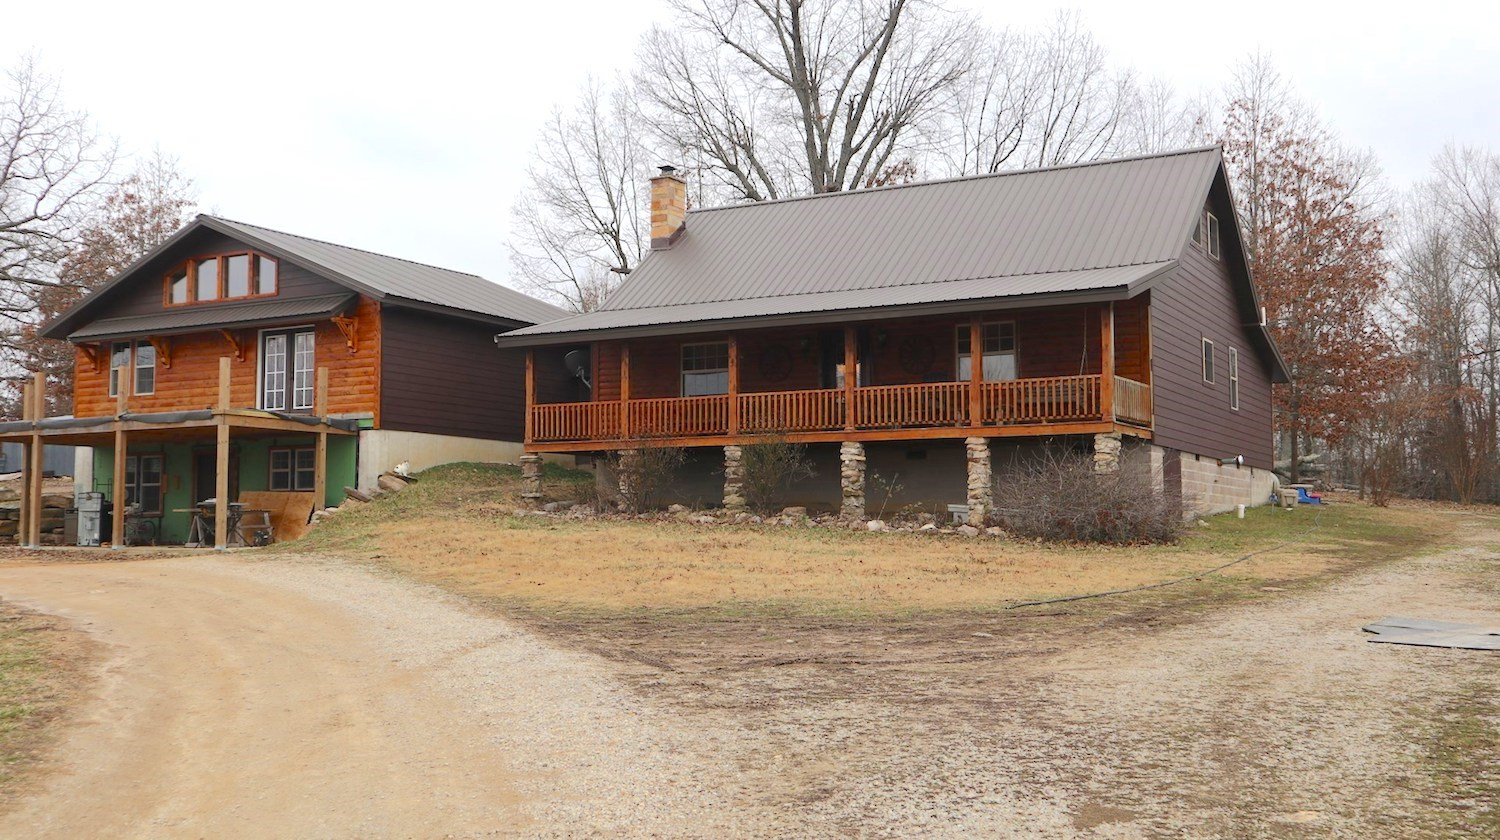 Log Sided Country Home & Farm for Sale near Salem Arkansas